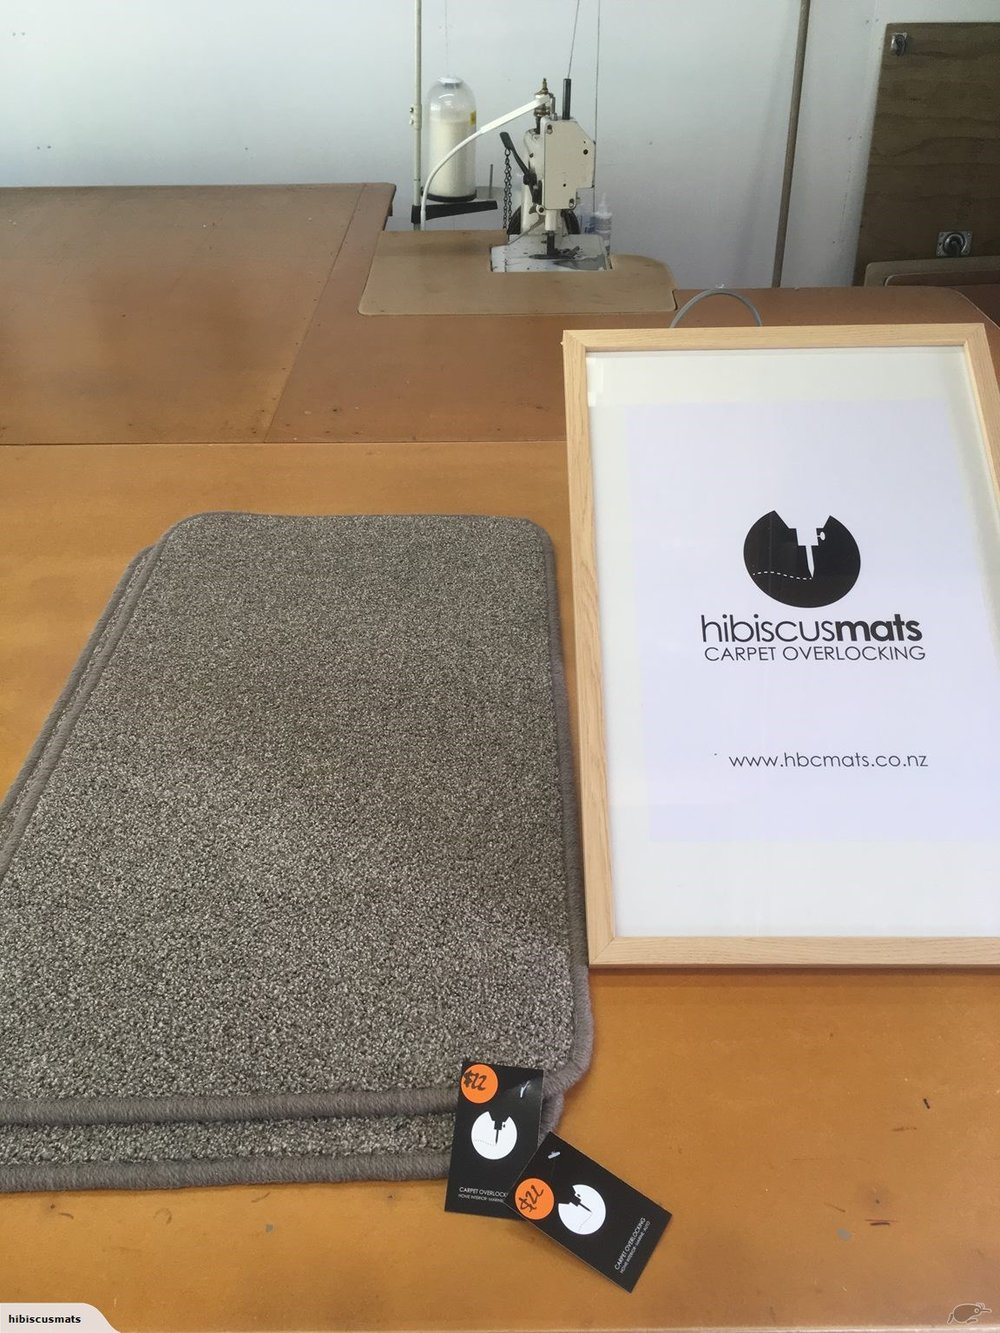 Carpet Mat 0.85m x 0.48m by Hibiscus Mats Carpet Overlocking $22 - Solution dyed nylon carpet mat cut & overlocked by Hibiscus Mats Carpet Overlocking. - Measures 0.84m x 0.48m- Colour: Taupe- Rounded corners to prevent curling- Can be gripped with Giltgrip Rug Grip for an additional fee